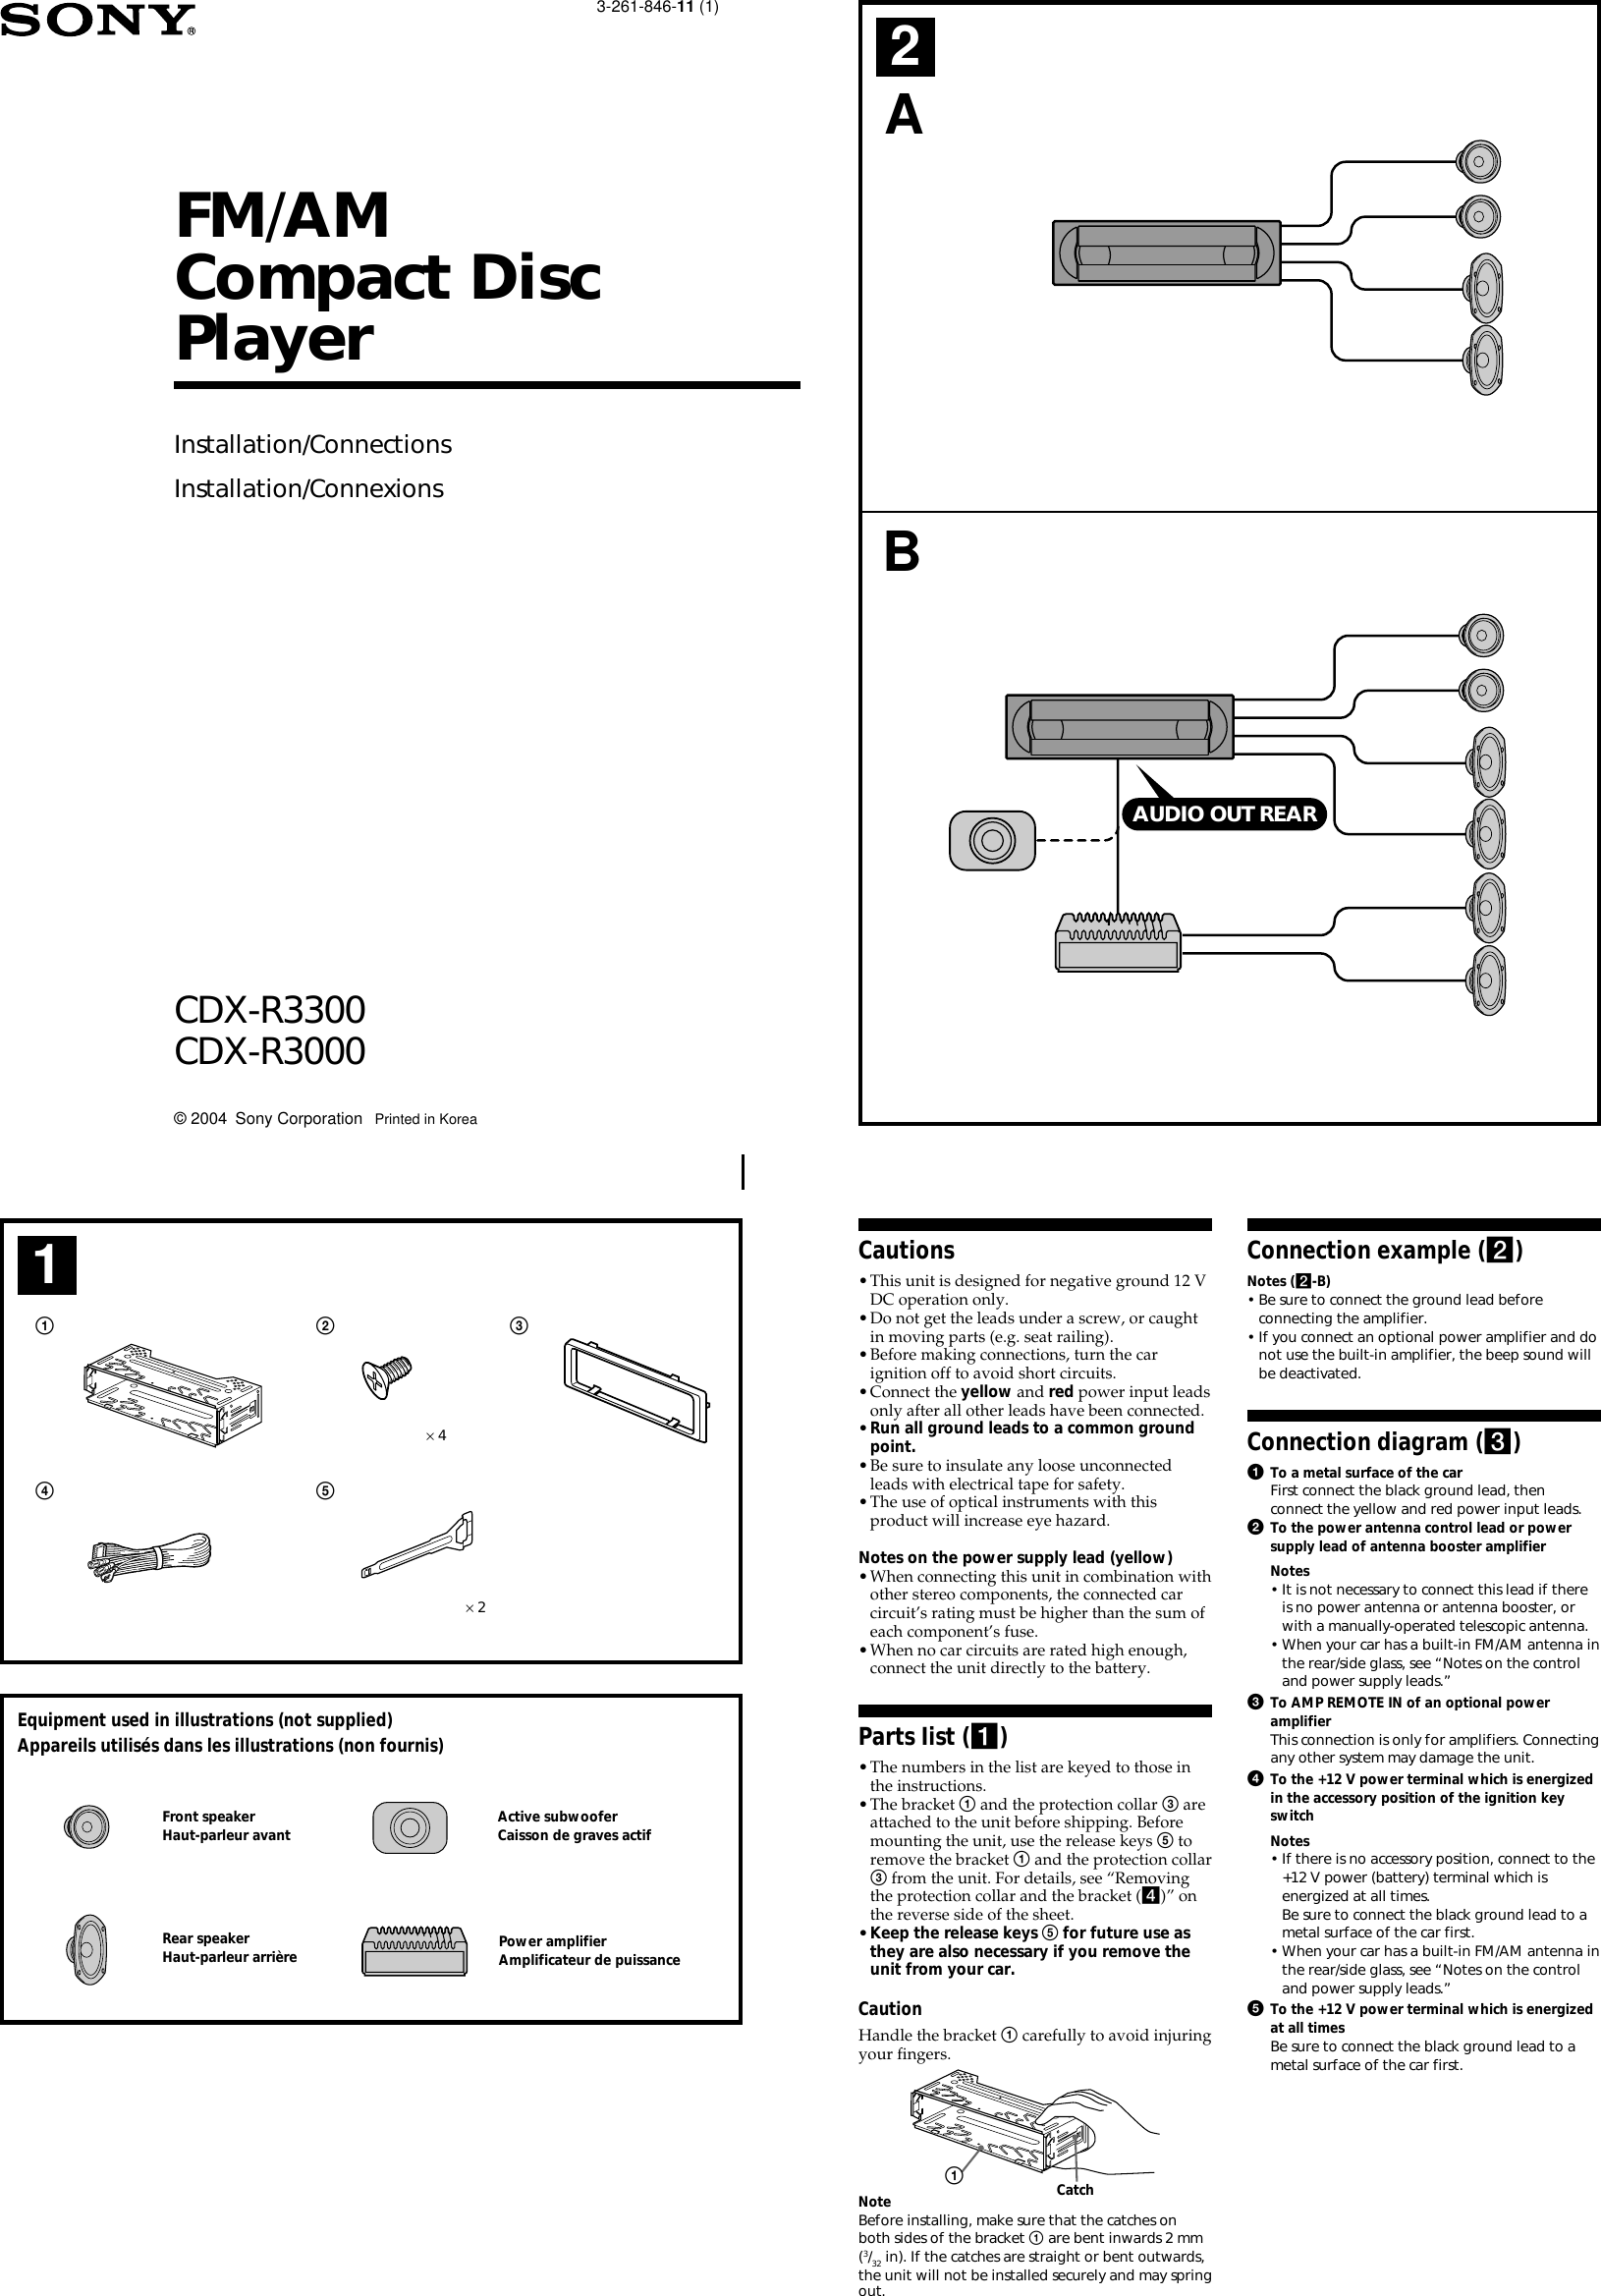 Sony Car Radio Wiring Diagram from usermanual.wiki